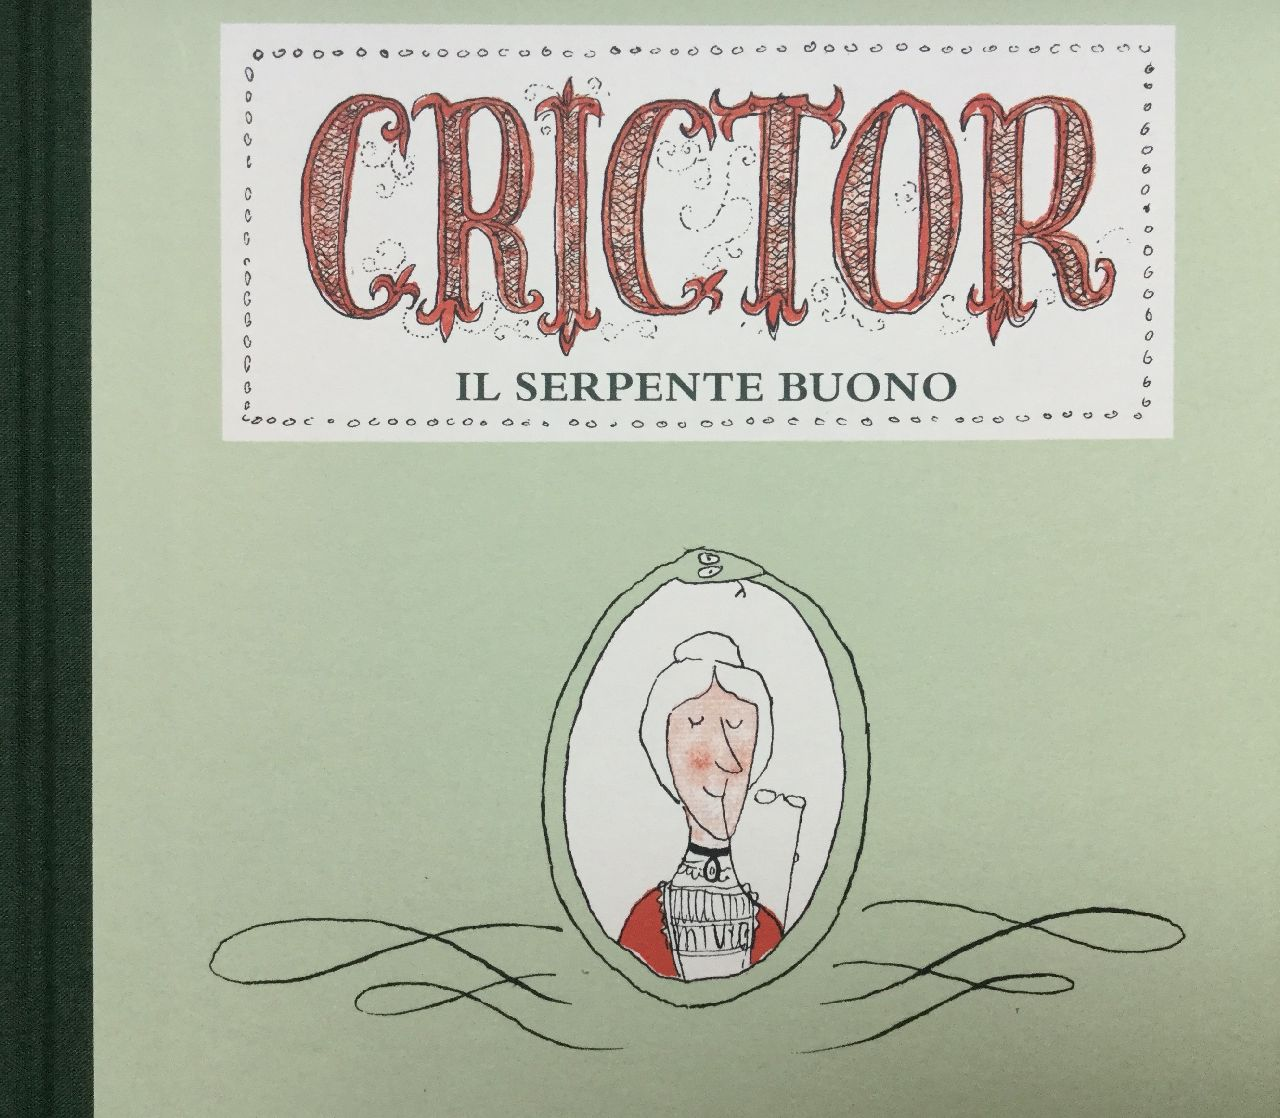 Tomi Ungerer, Crictor, Lupo Guido